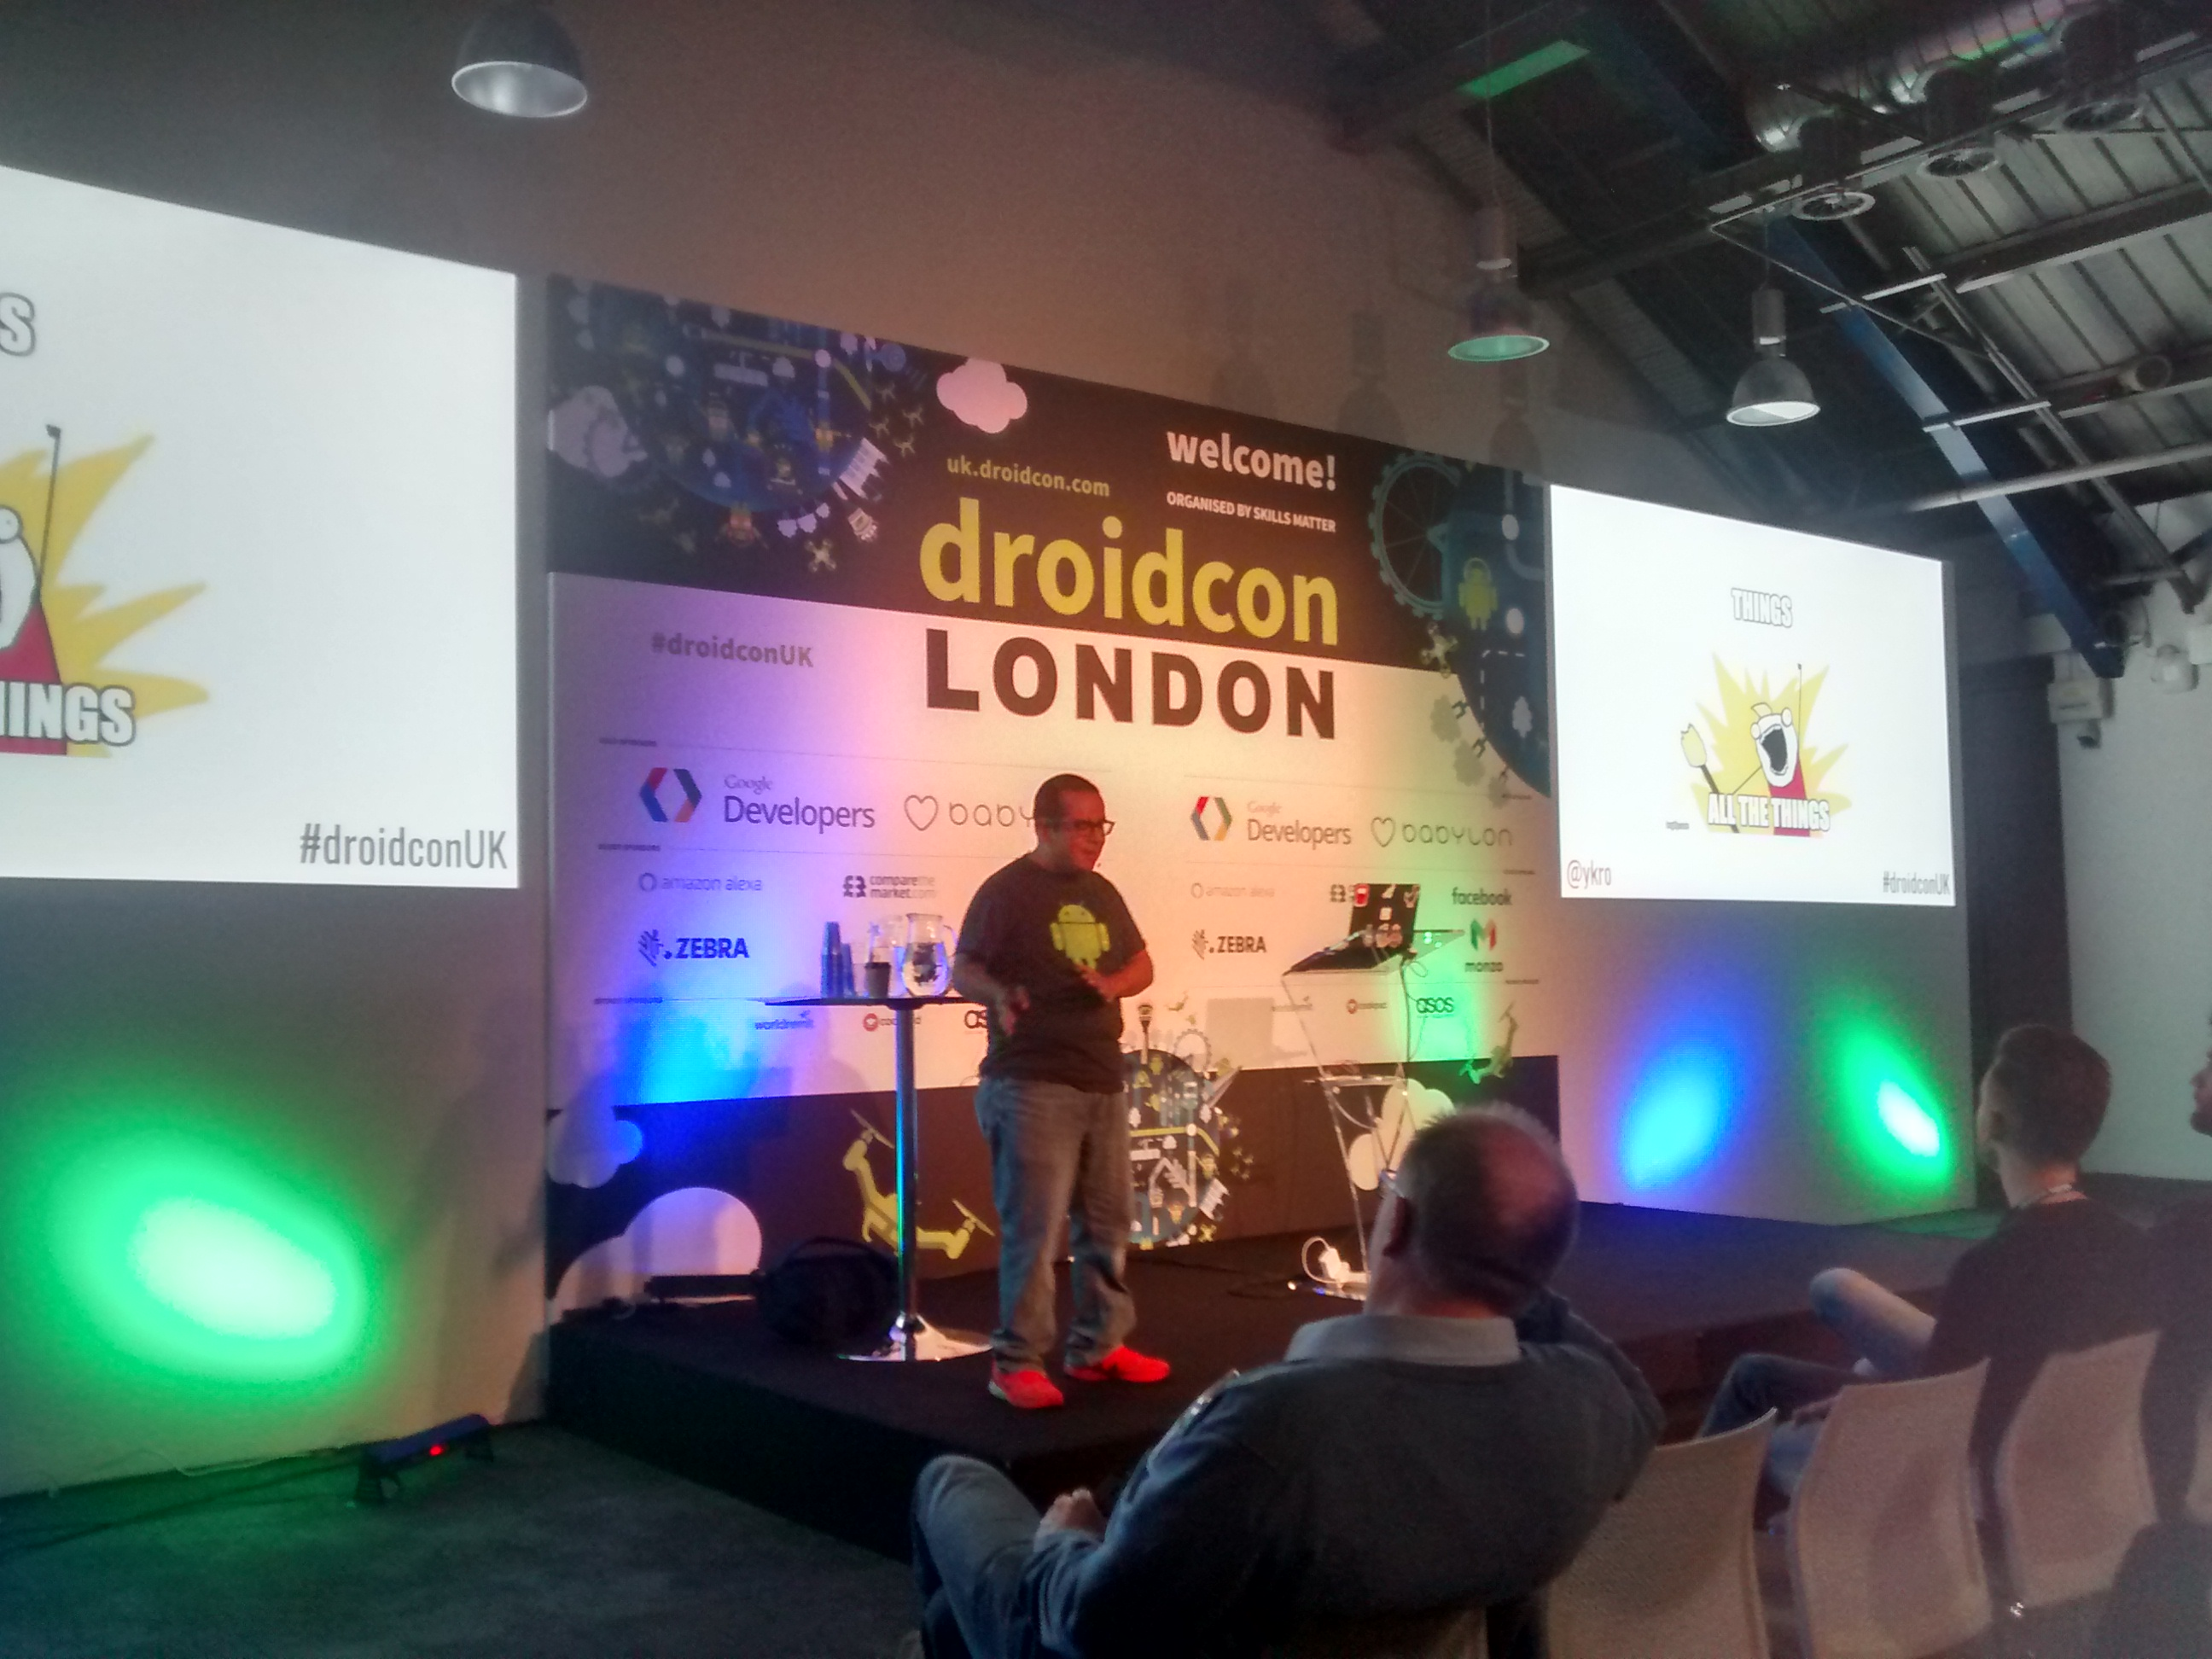 Drones, Things and Android galore at droidcon London 2017